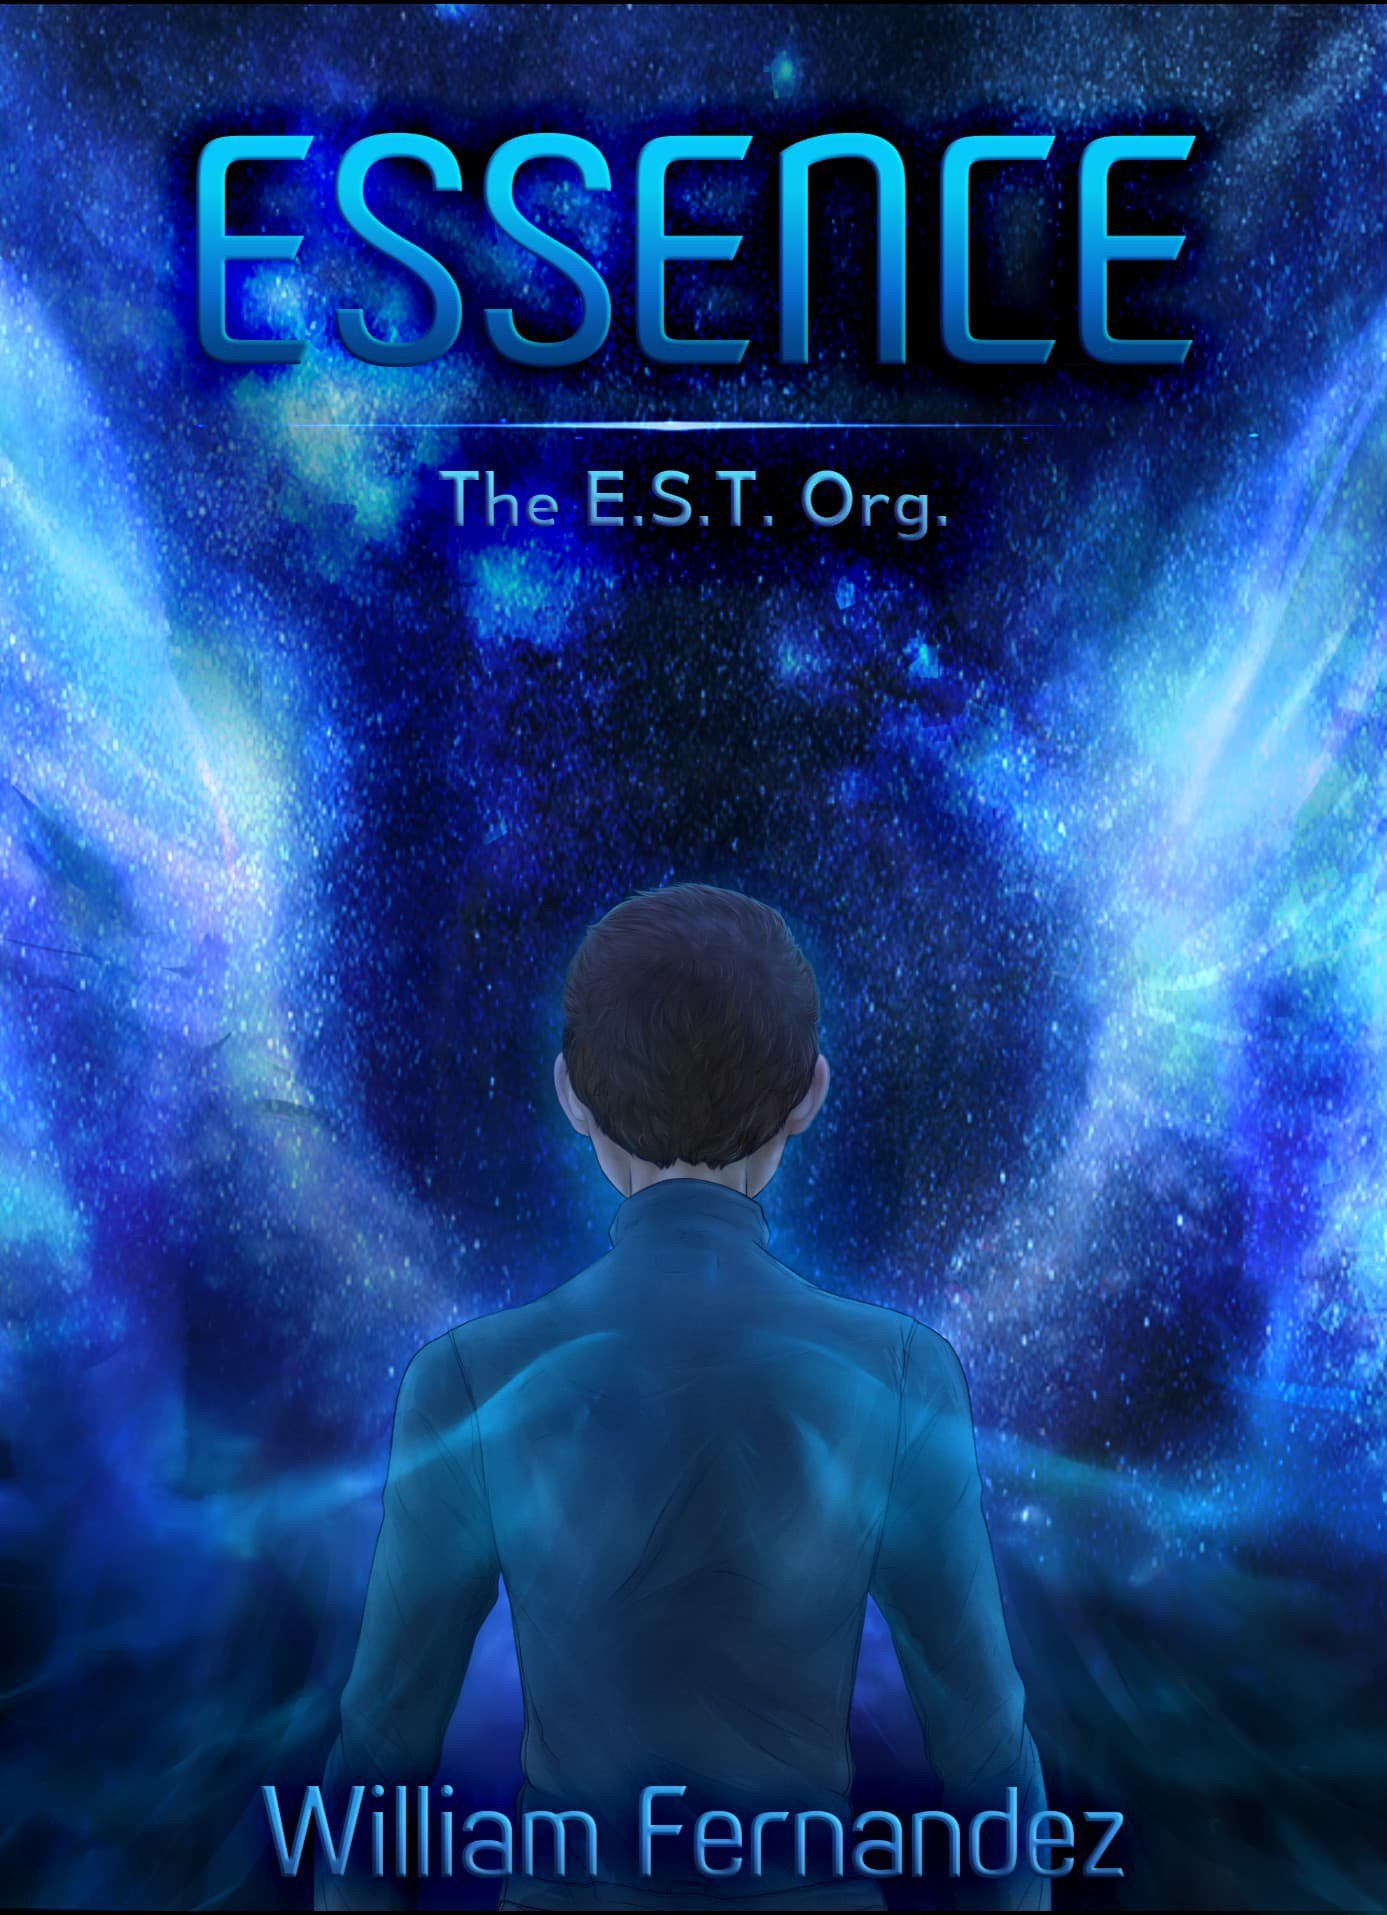 Essence: The E.S.T. Org.